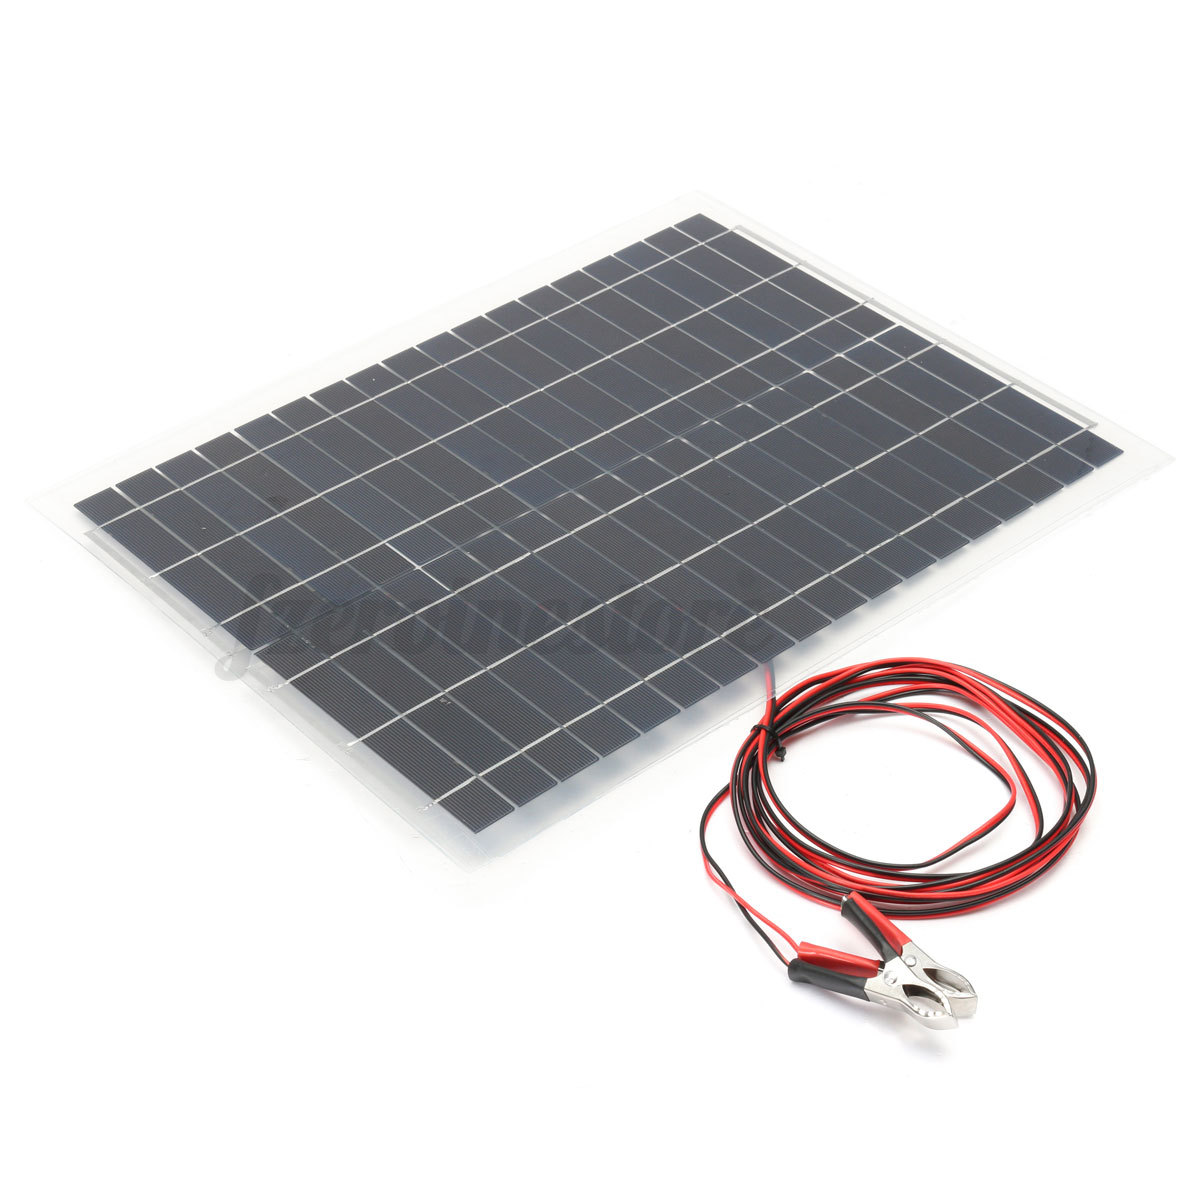 Rv Solar Battery Charger System : W v flexible solar panel kit m cable for battery